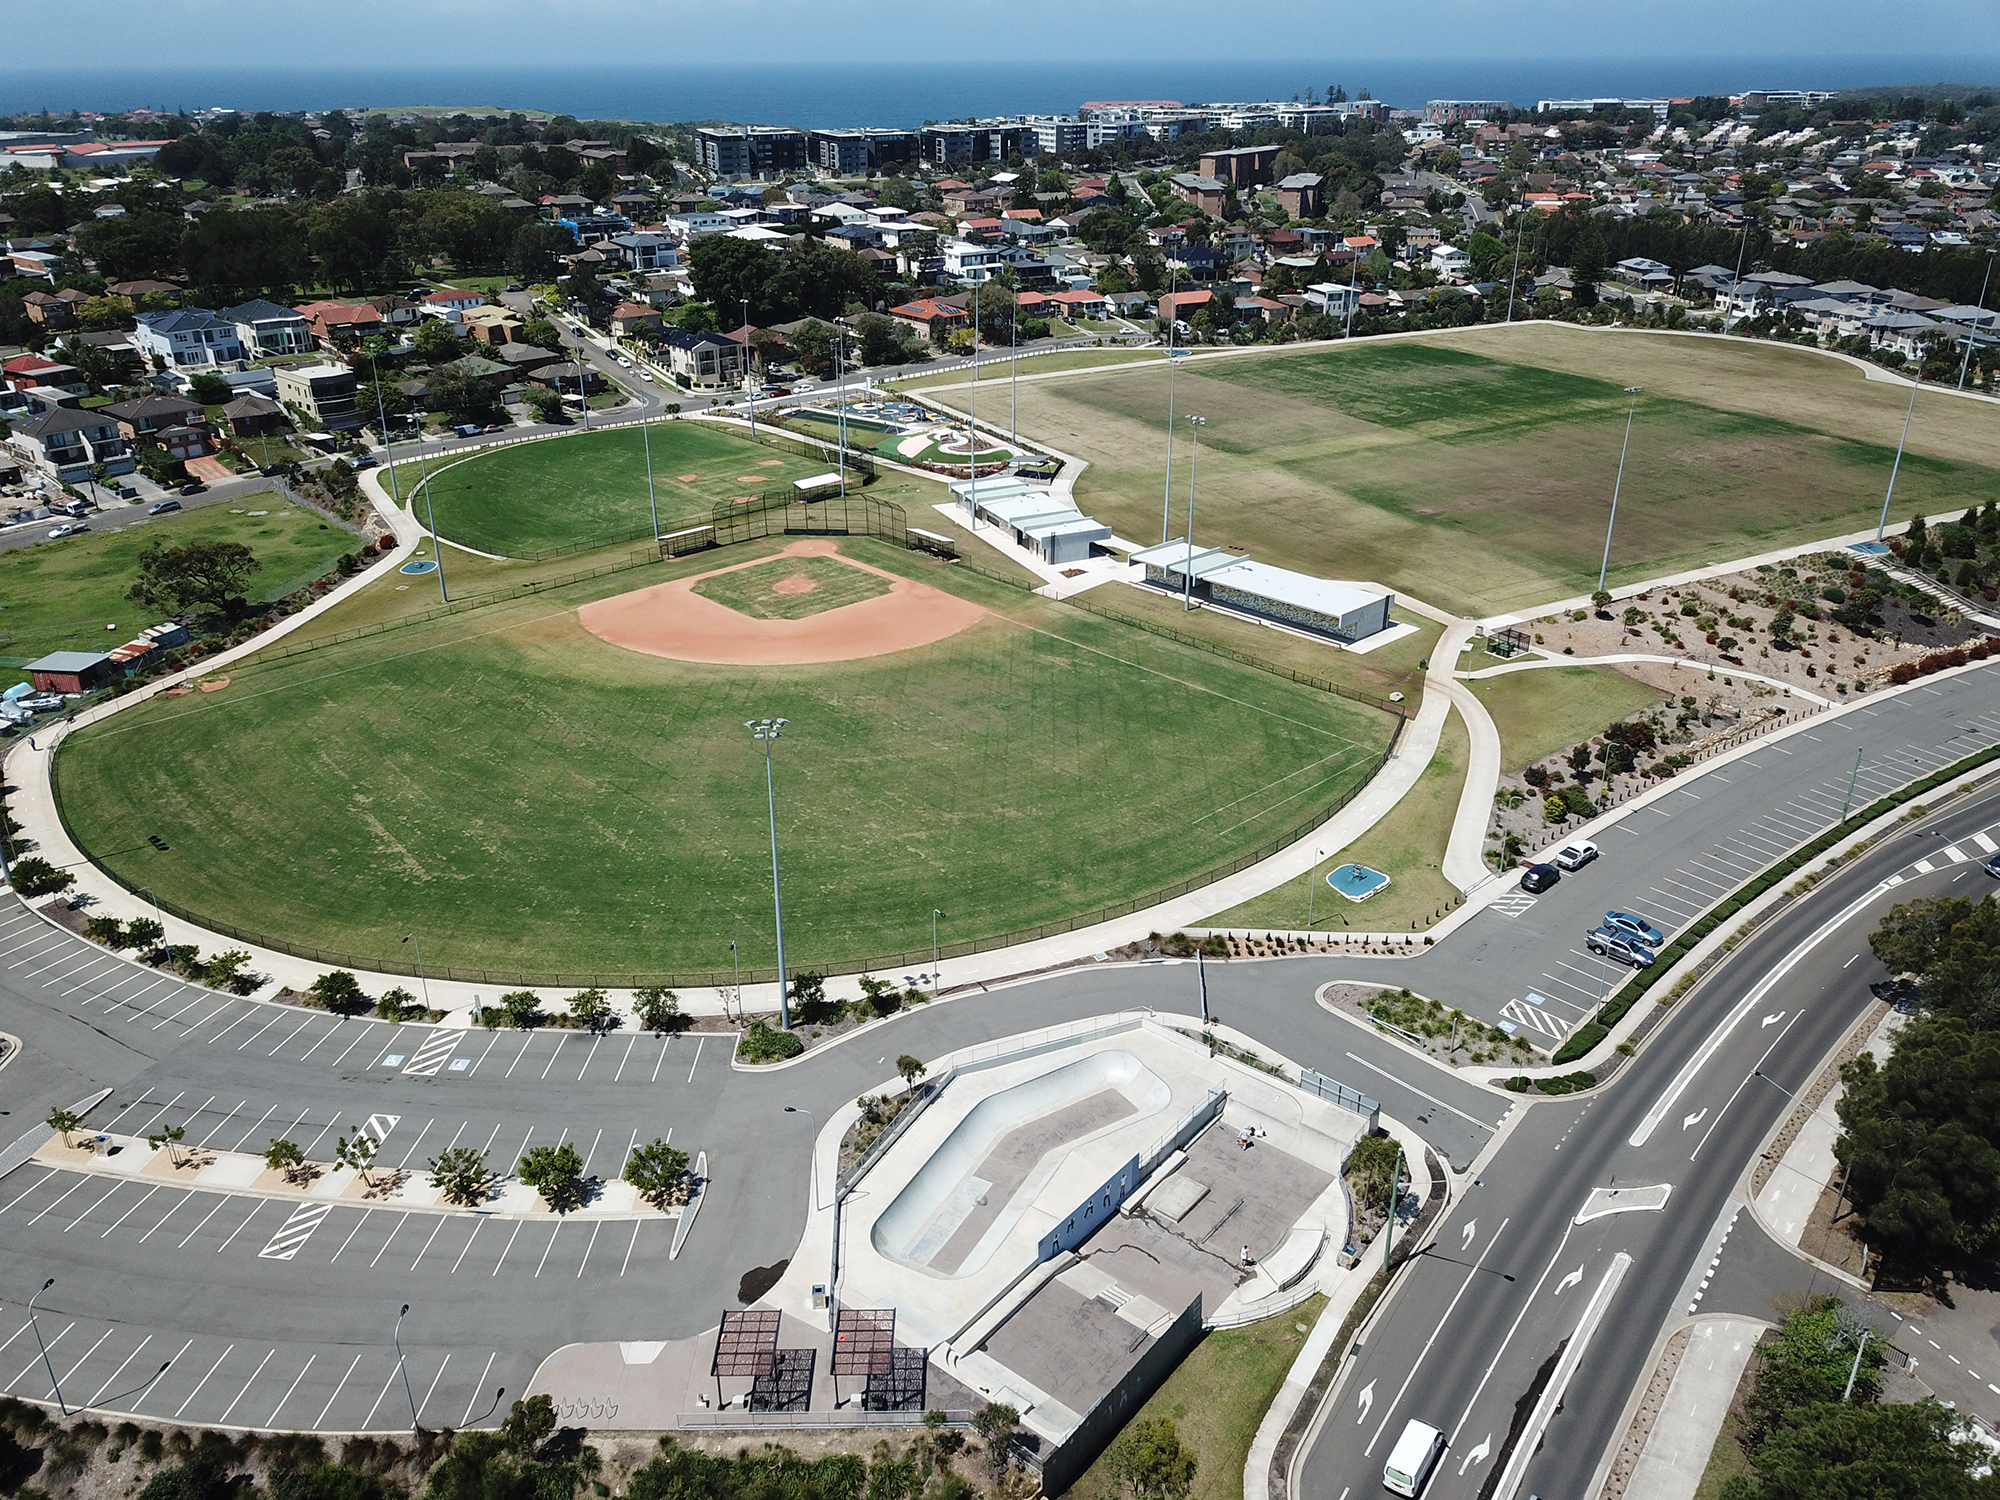 Chifley Sports Reserve